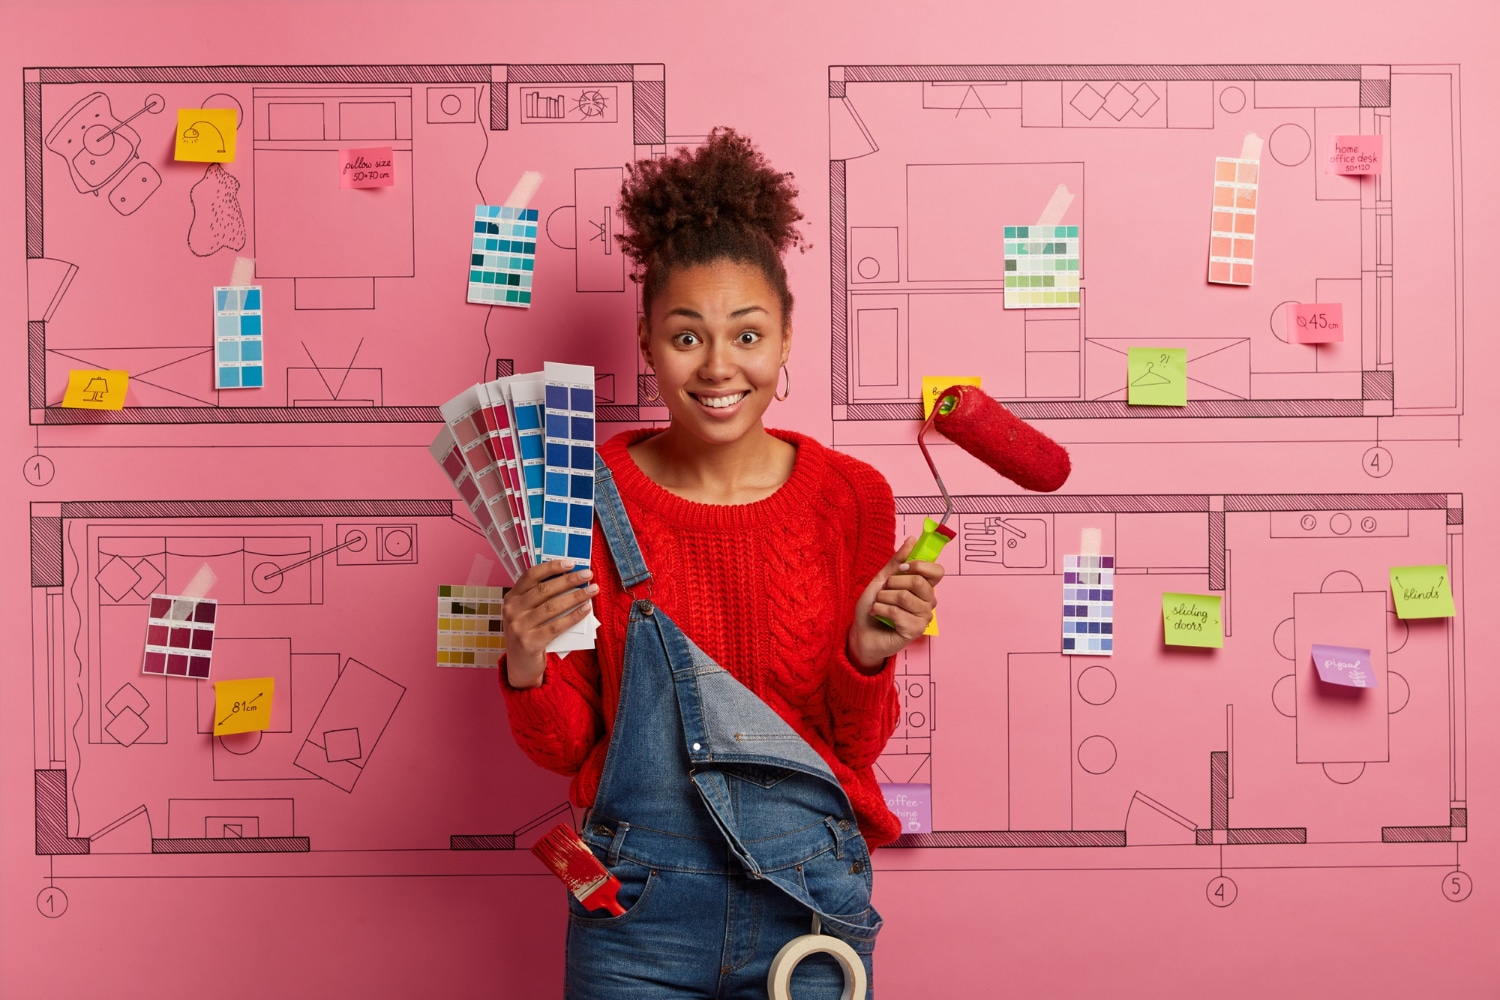 8 Remodeling Tips to Give Your Home a Fresh Look